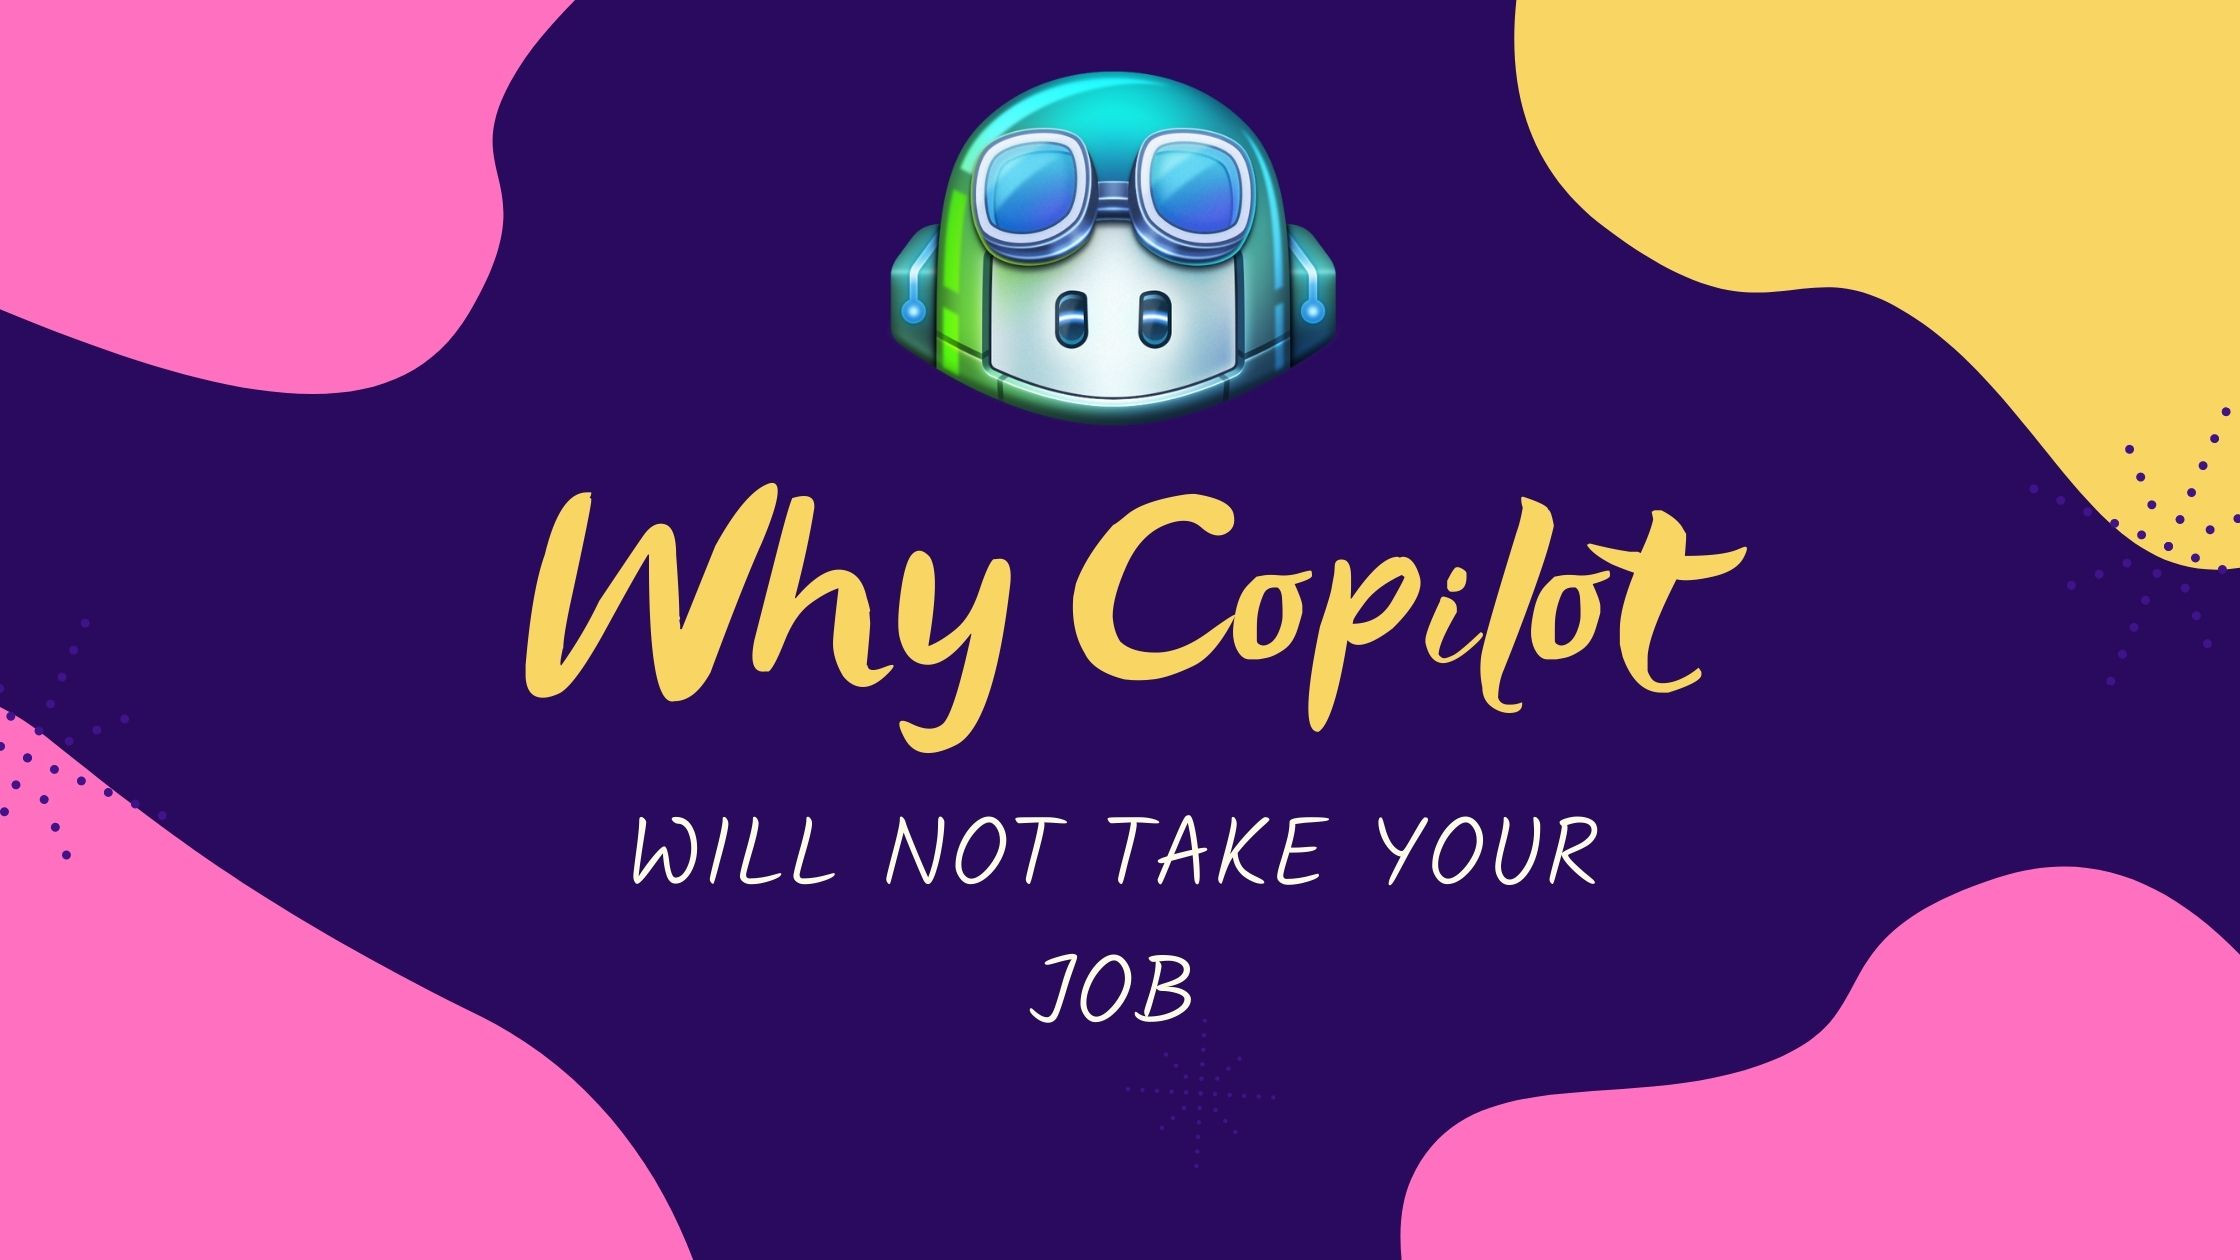 Why Copilot will not steal your Job